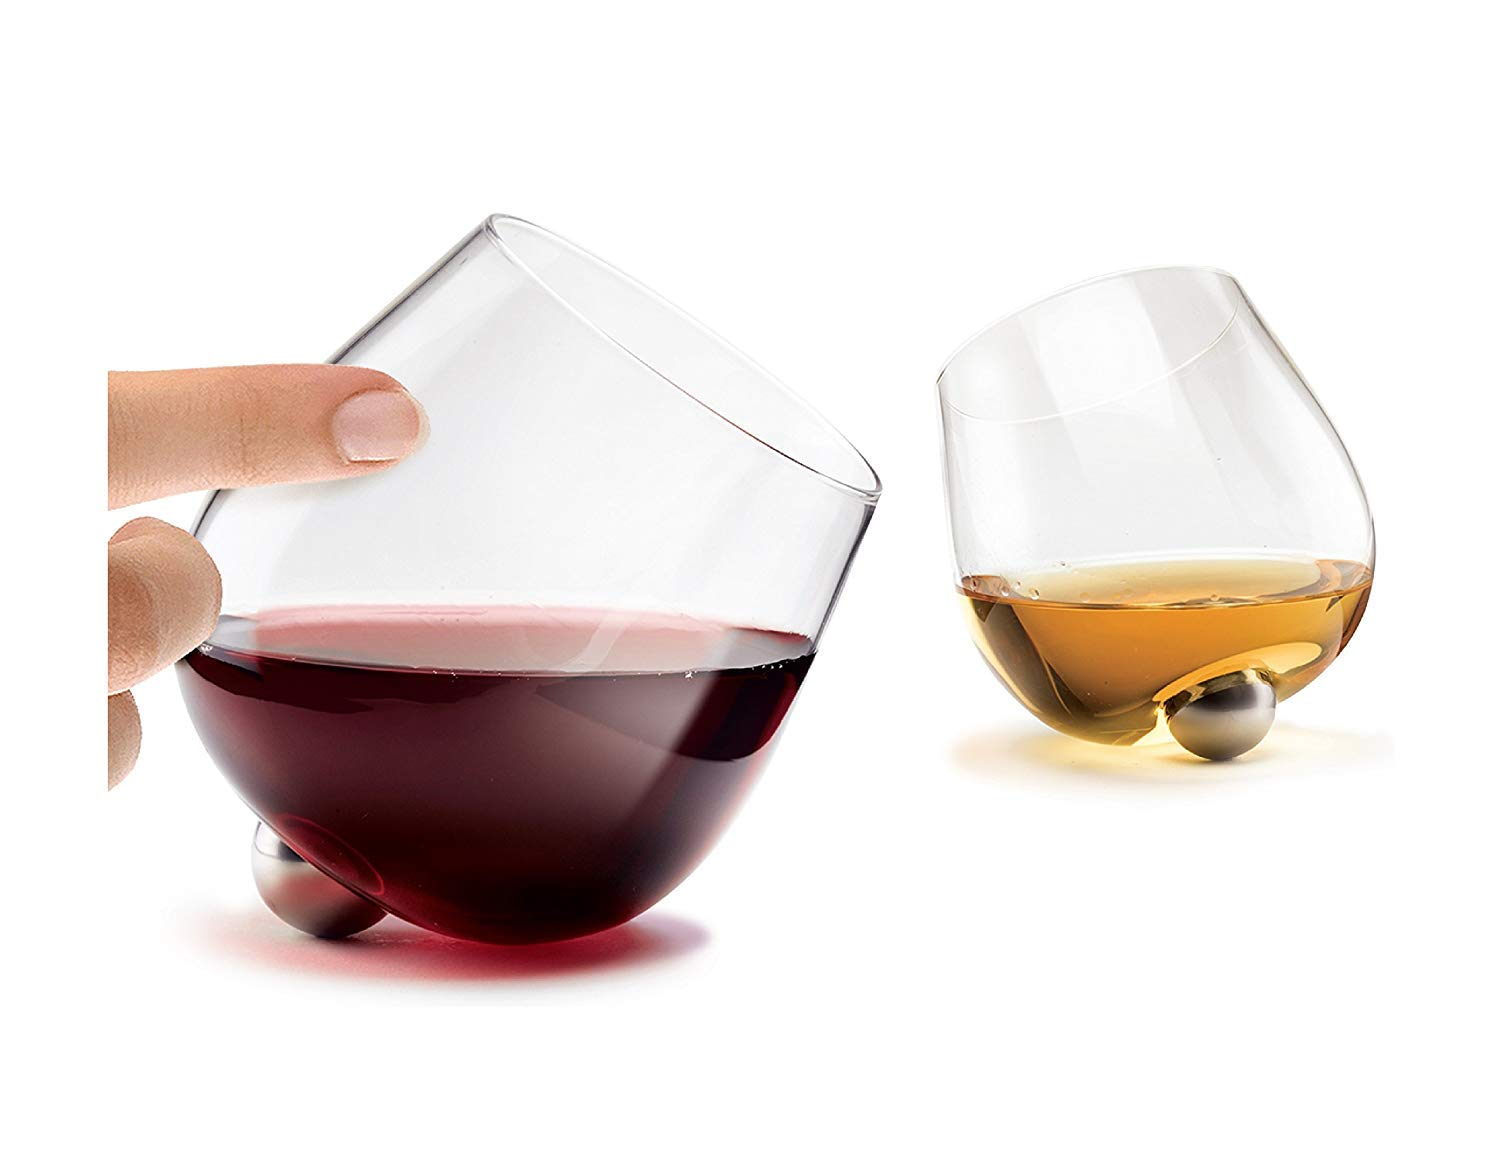 e99993ce57b Aura Glass 14oz Stemless Aerating Wine Glasses (Set of 2) - No Spill  Spinning Glass Tumblers for Red or White Wines - Includes 2 Wood Oak  Coasters, ...